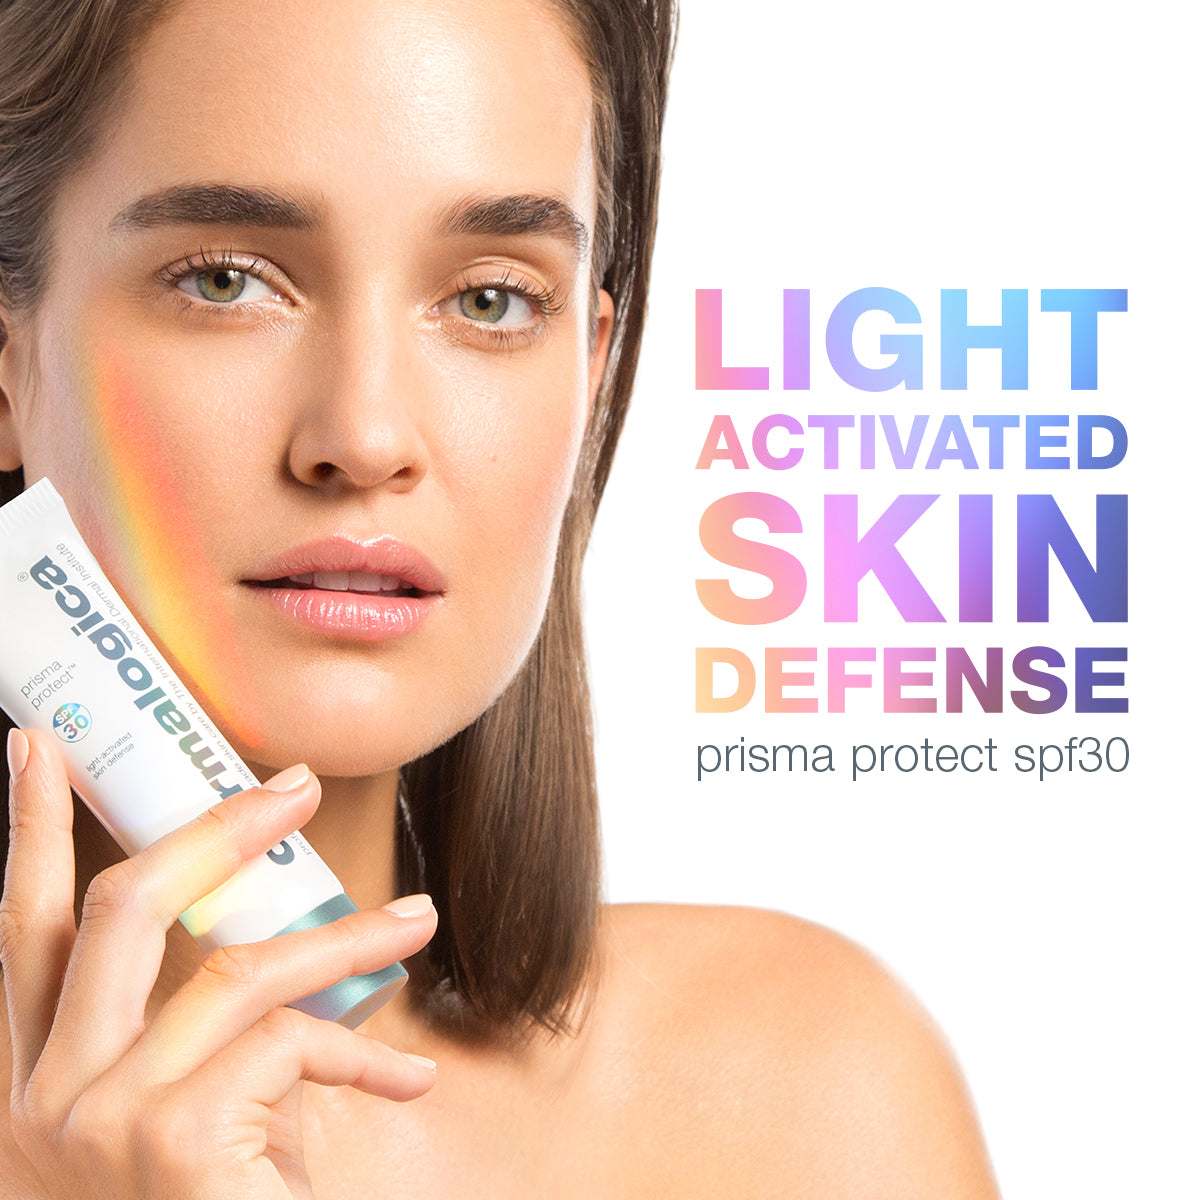 NEW! Prisma Protect SPF 30 by Dermalogica